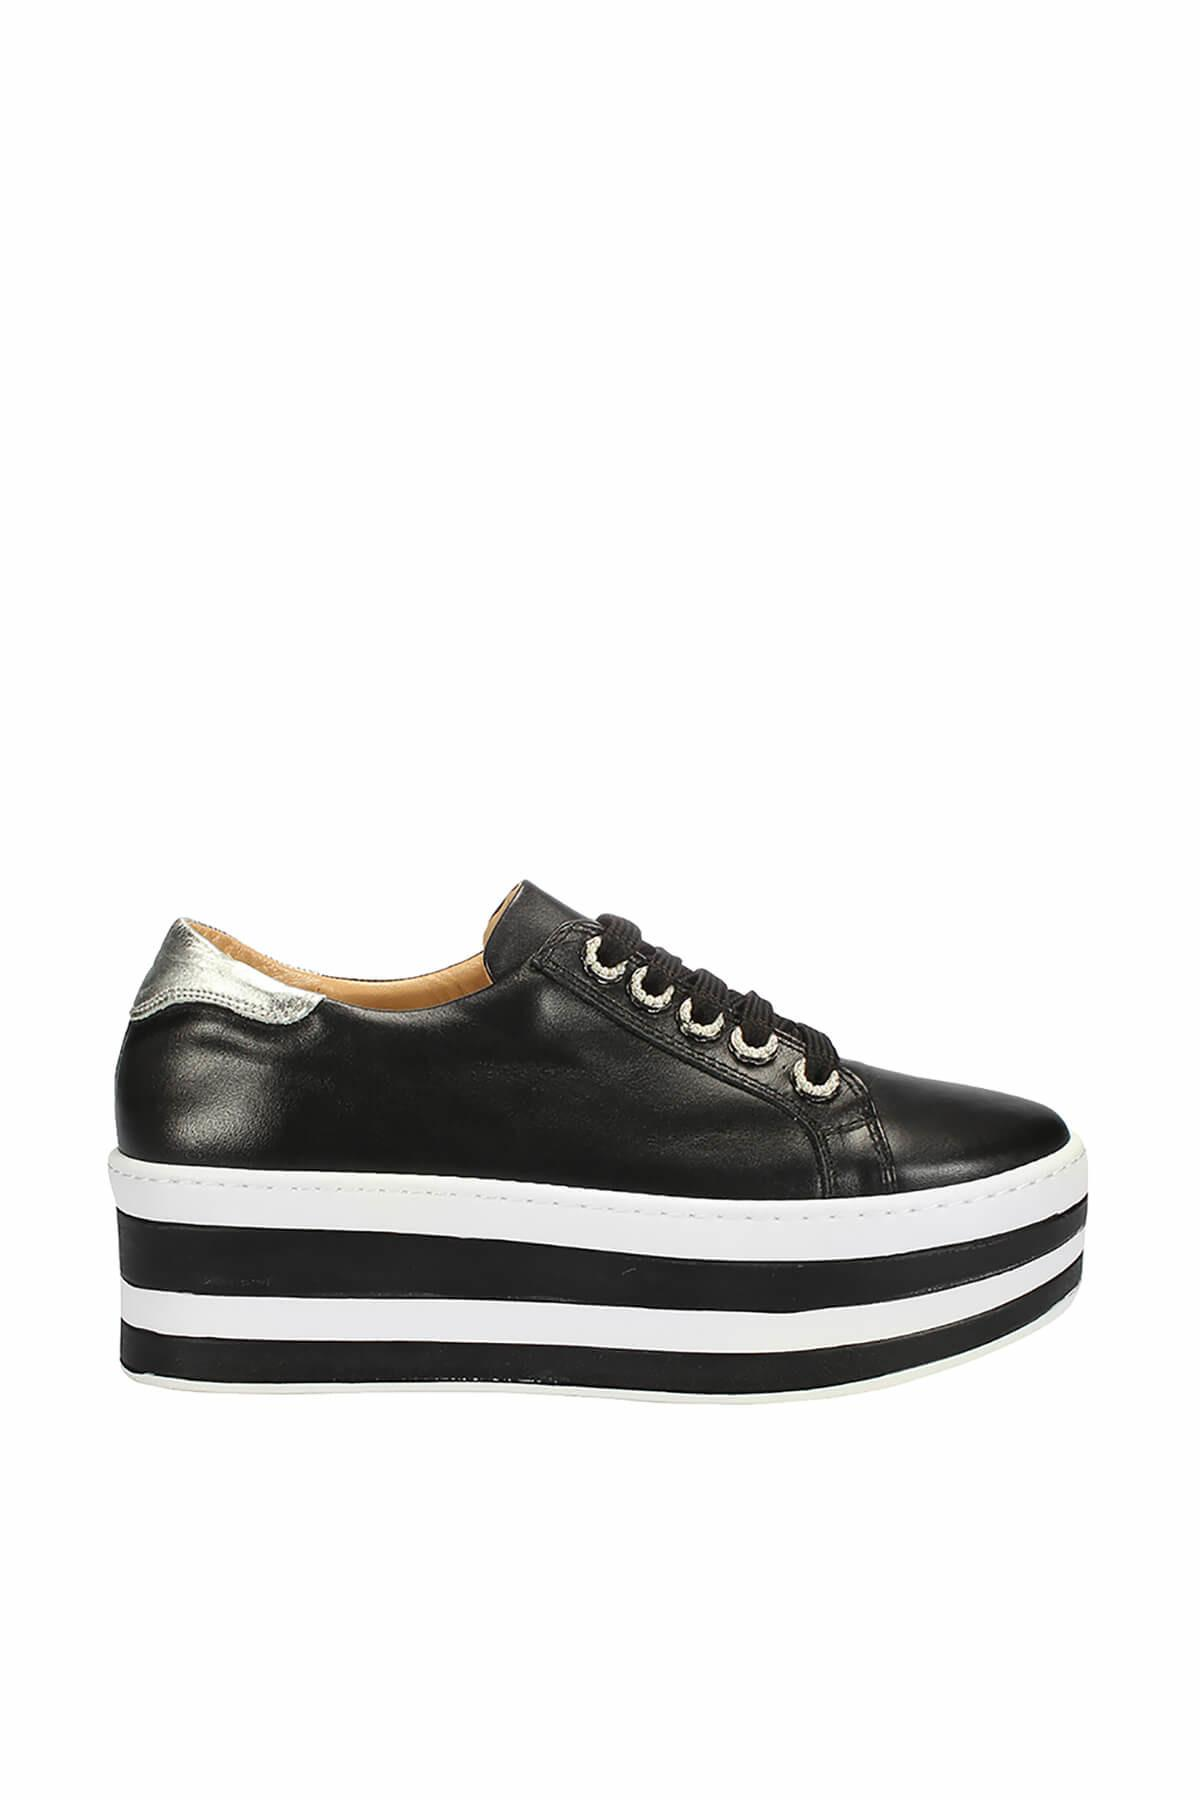 Pearl Genuine Leather Black Women 'S Classic Shoes 120130006605 title=